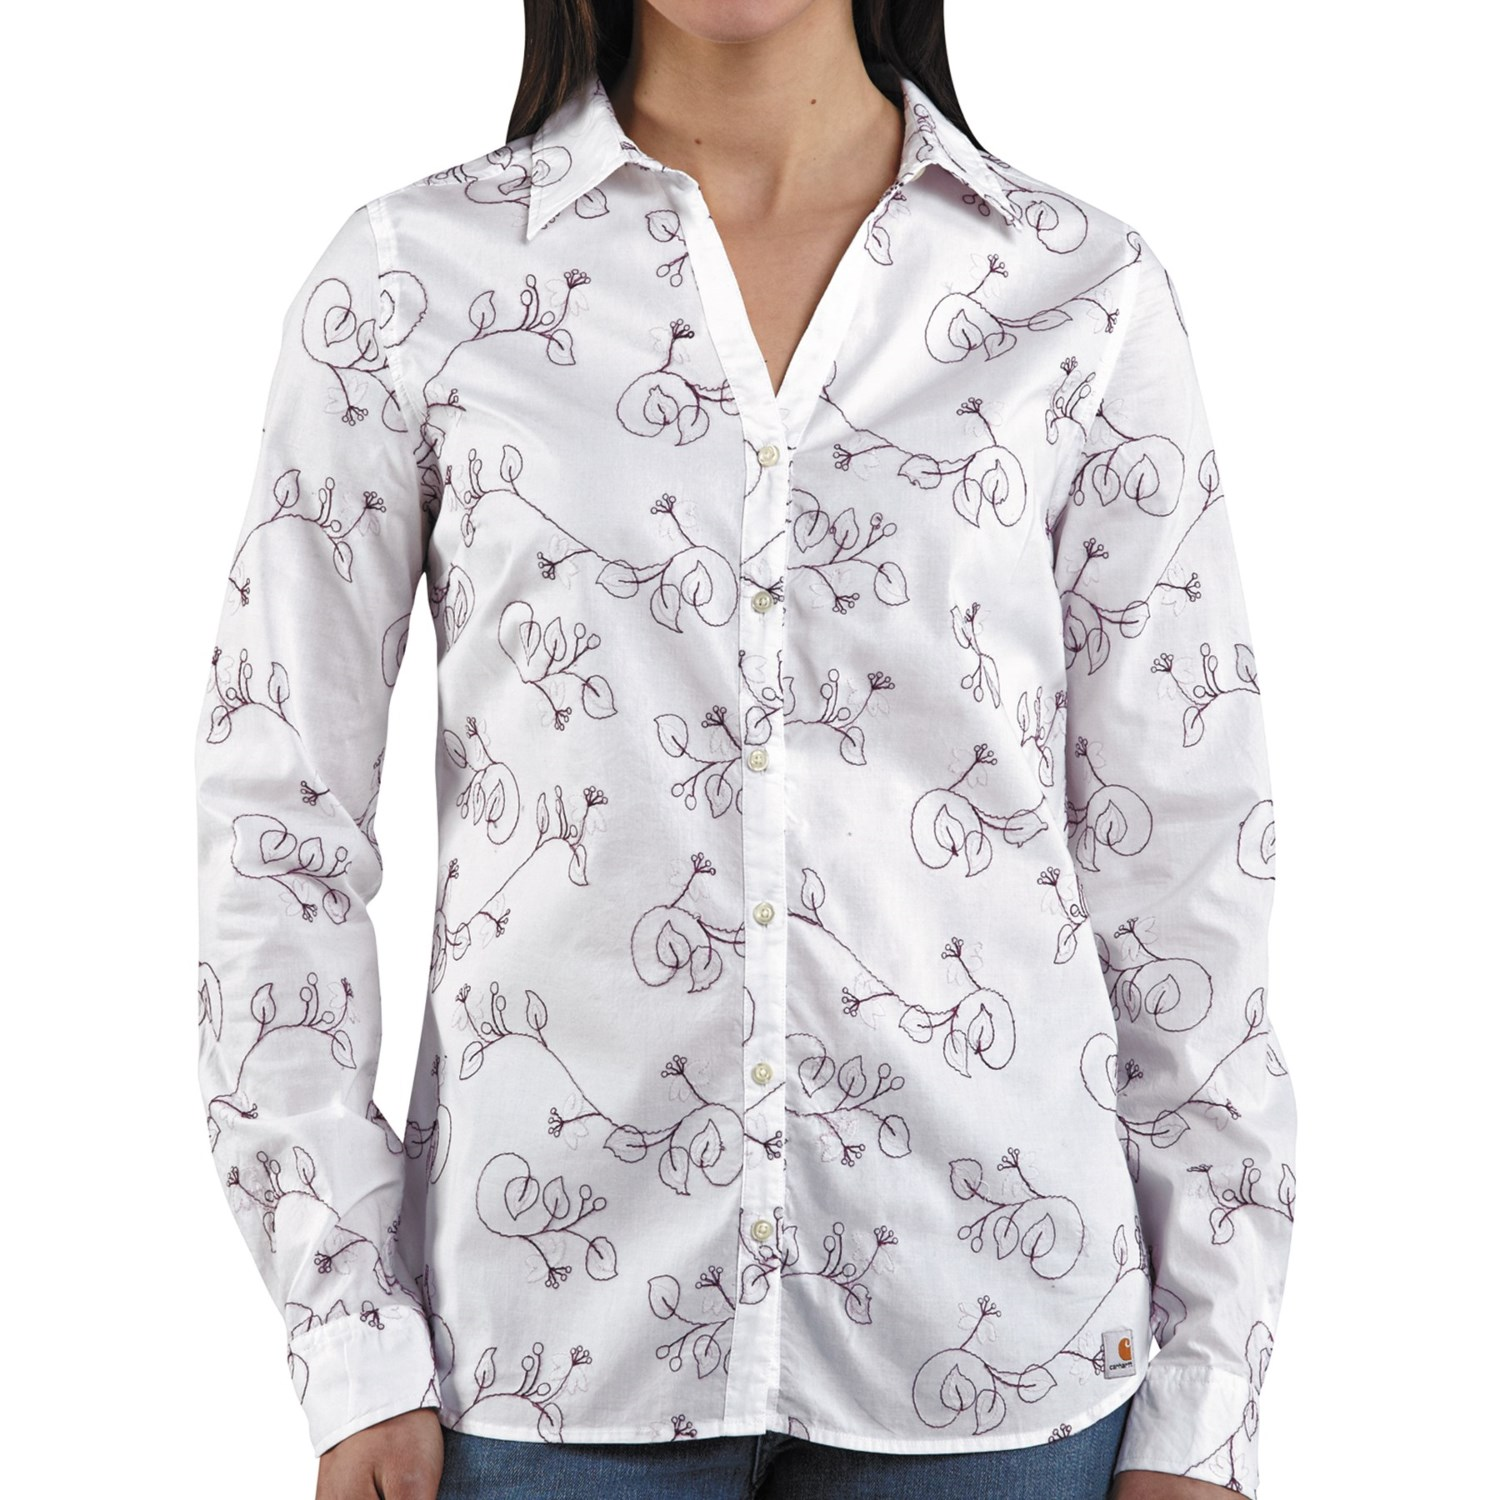 Carhartt embroidered woven shirt for women